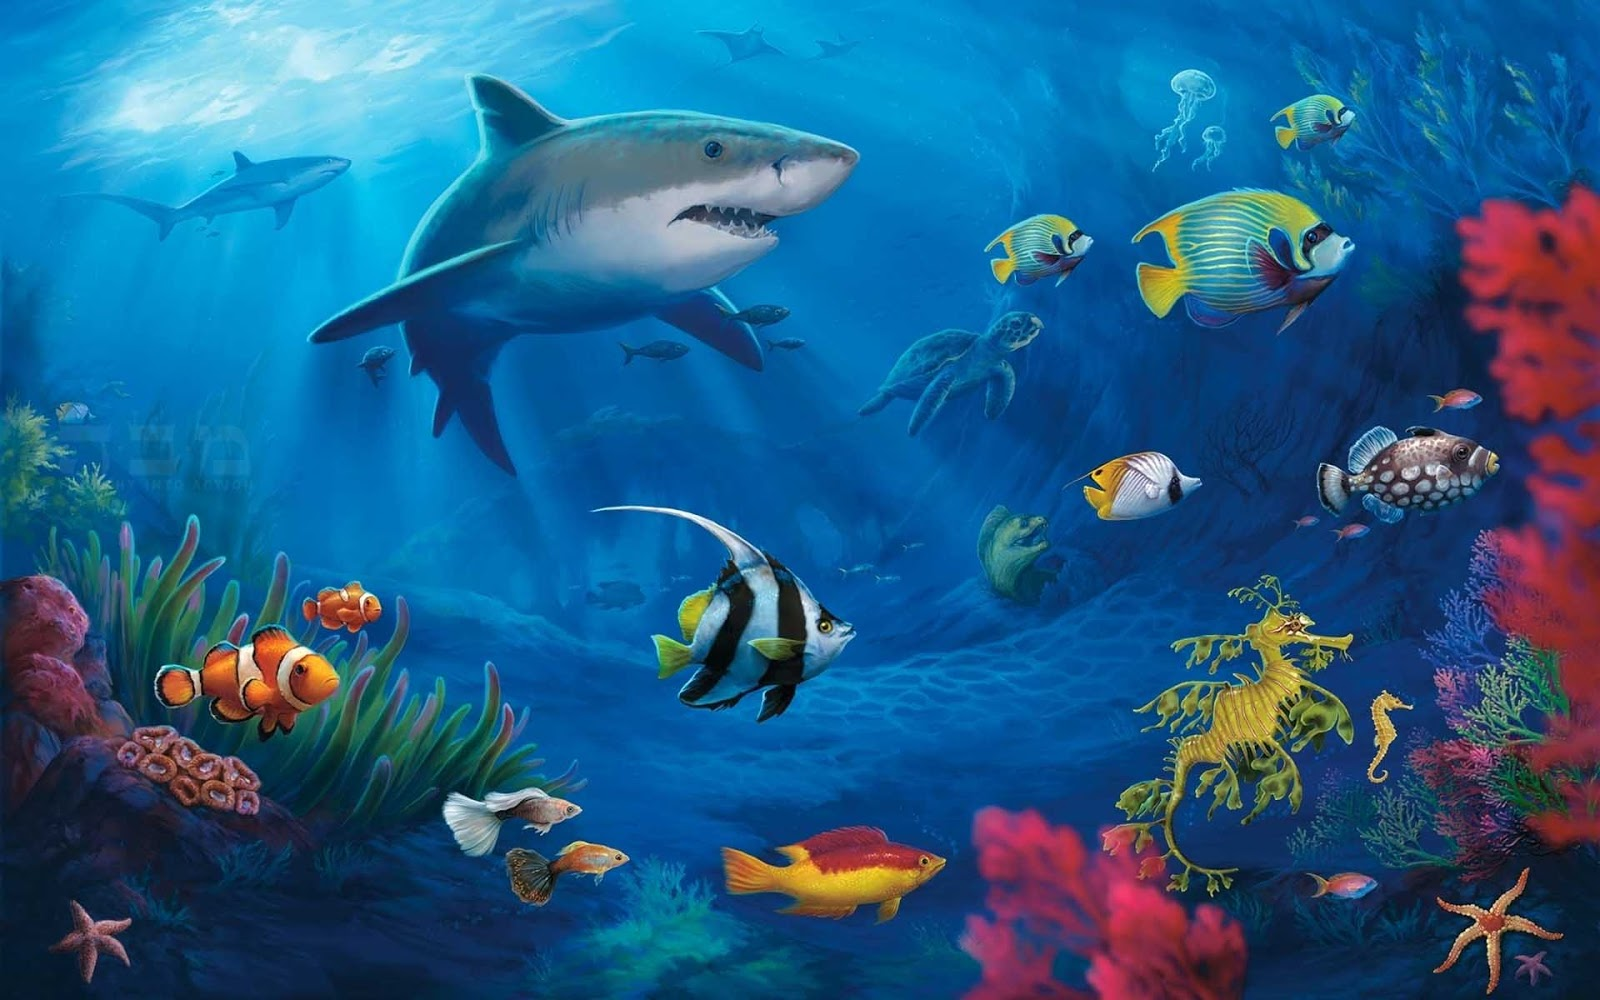 HD Wallpapers Desktop Ocean Life HD DeskTop Wallpapers 1600x1000